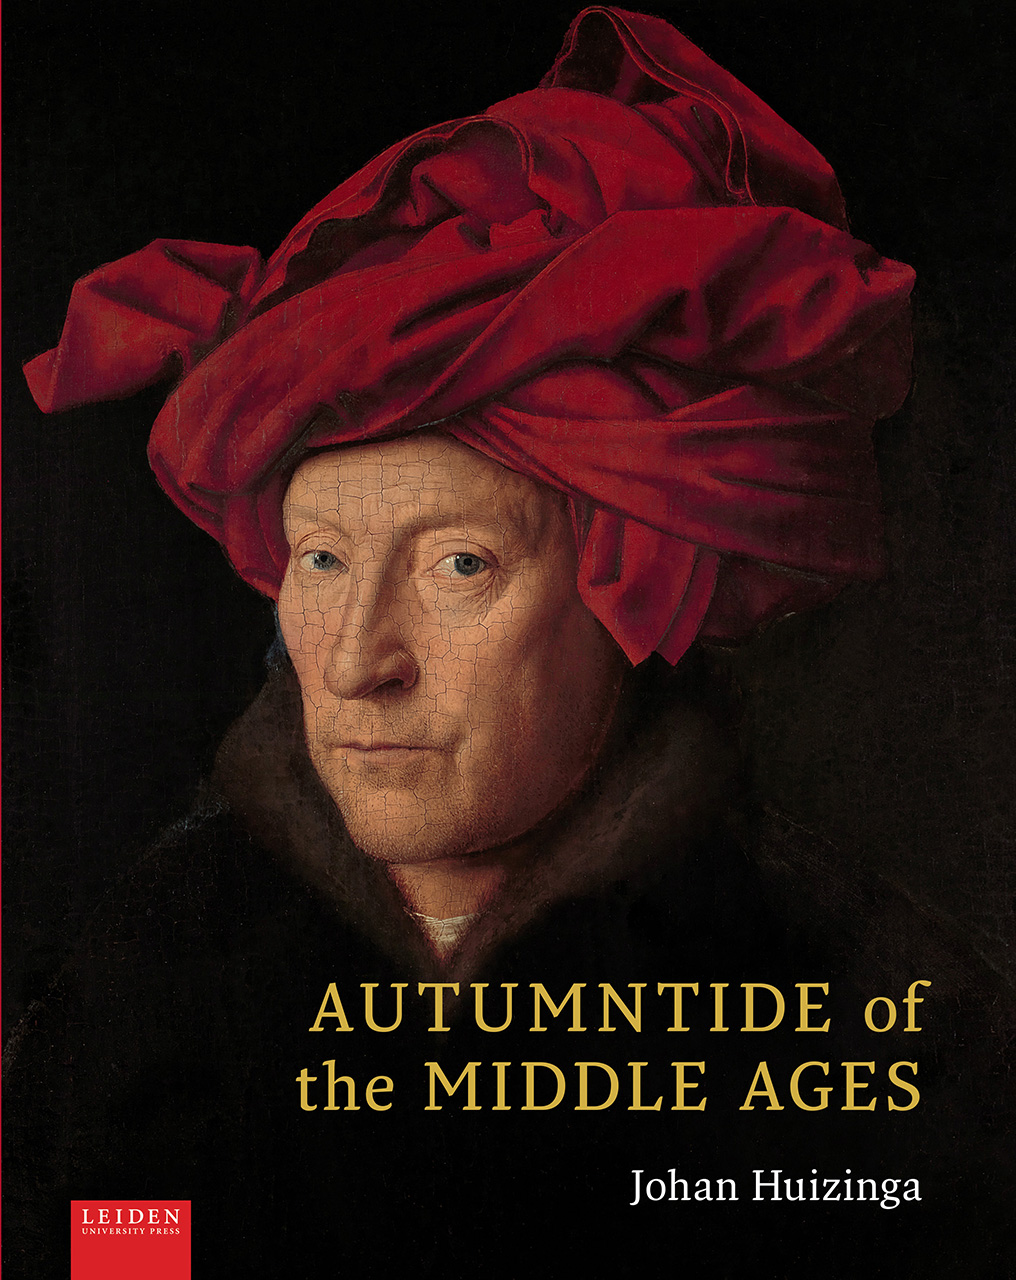 Autumntide of the Middle Ages